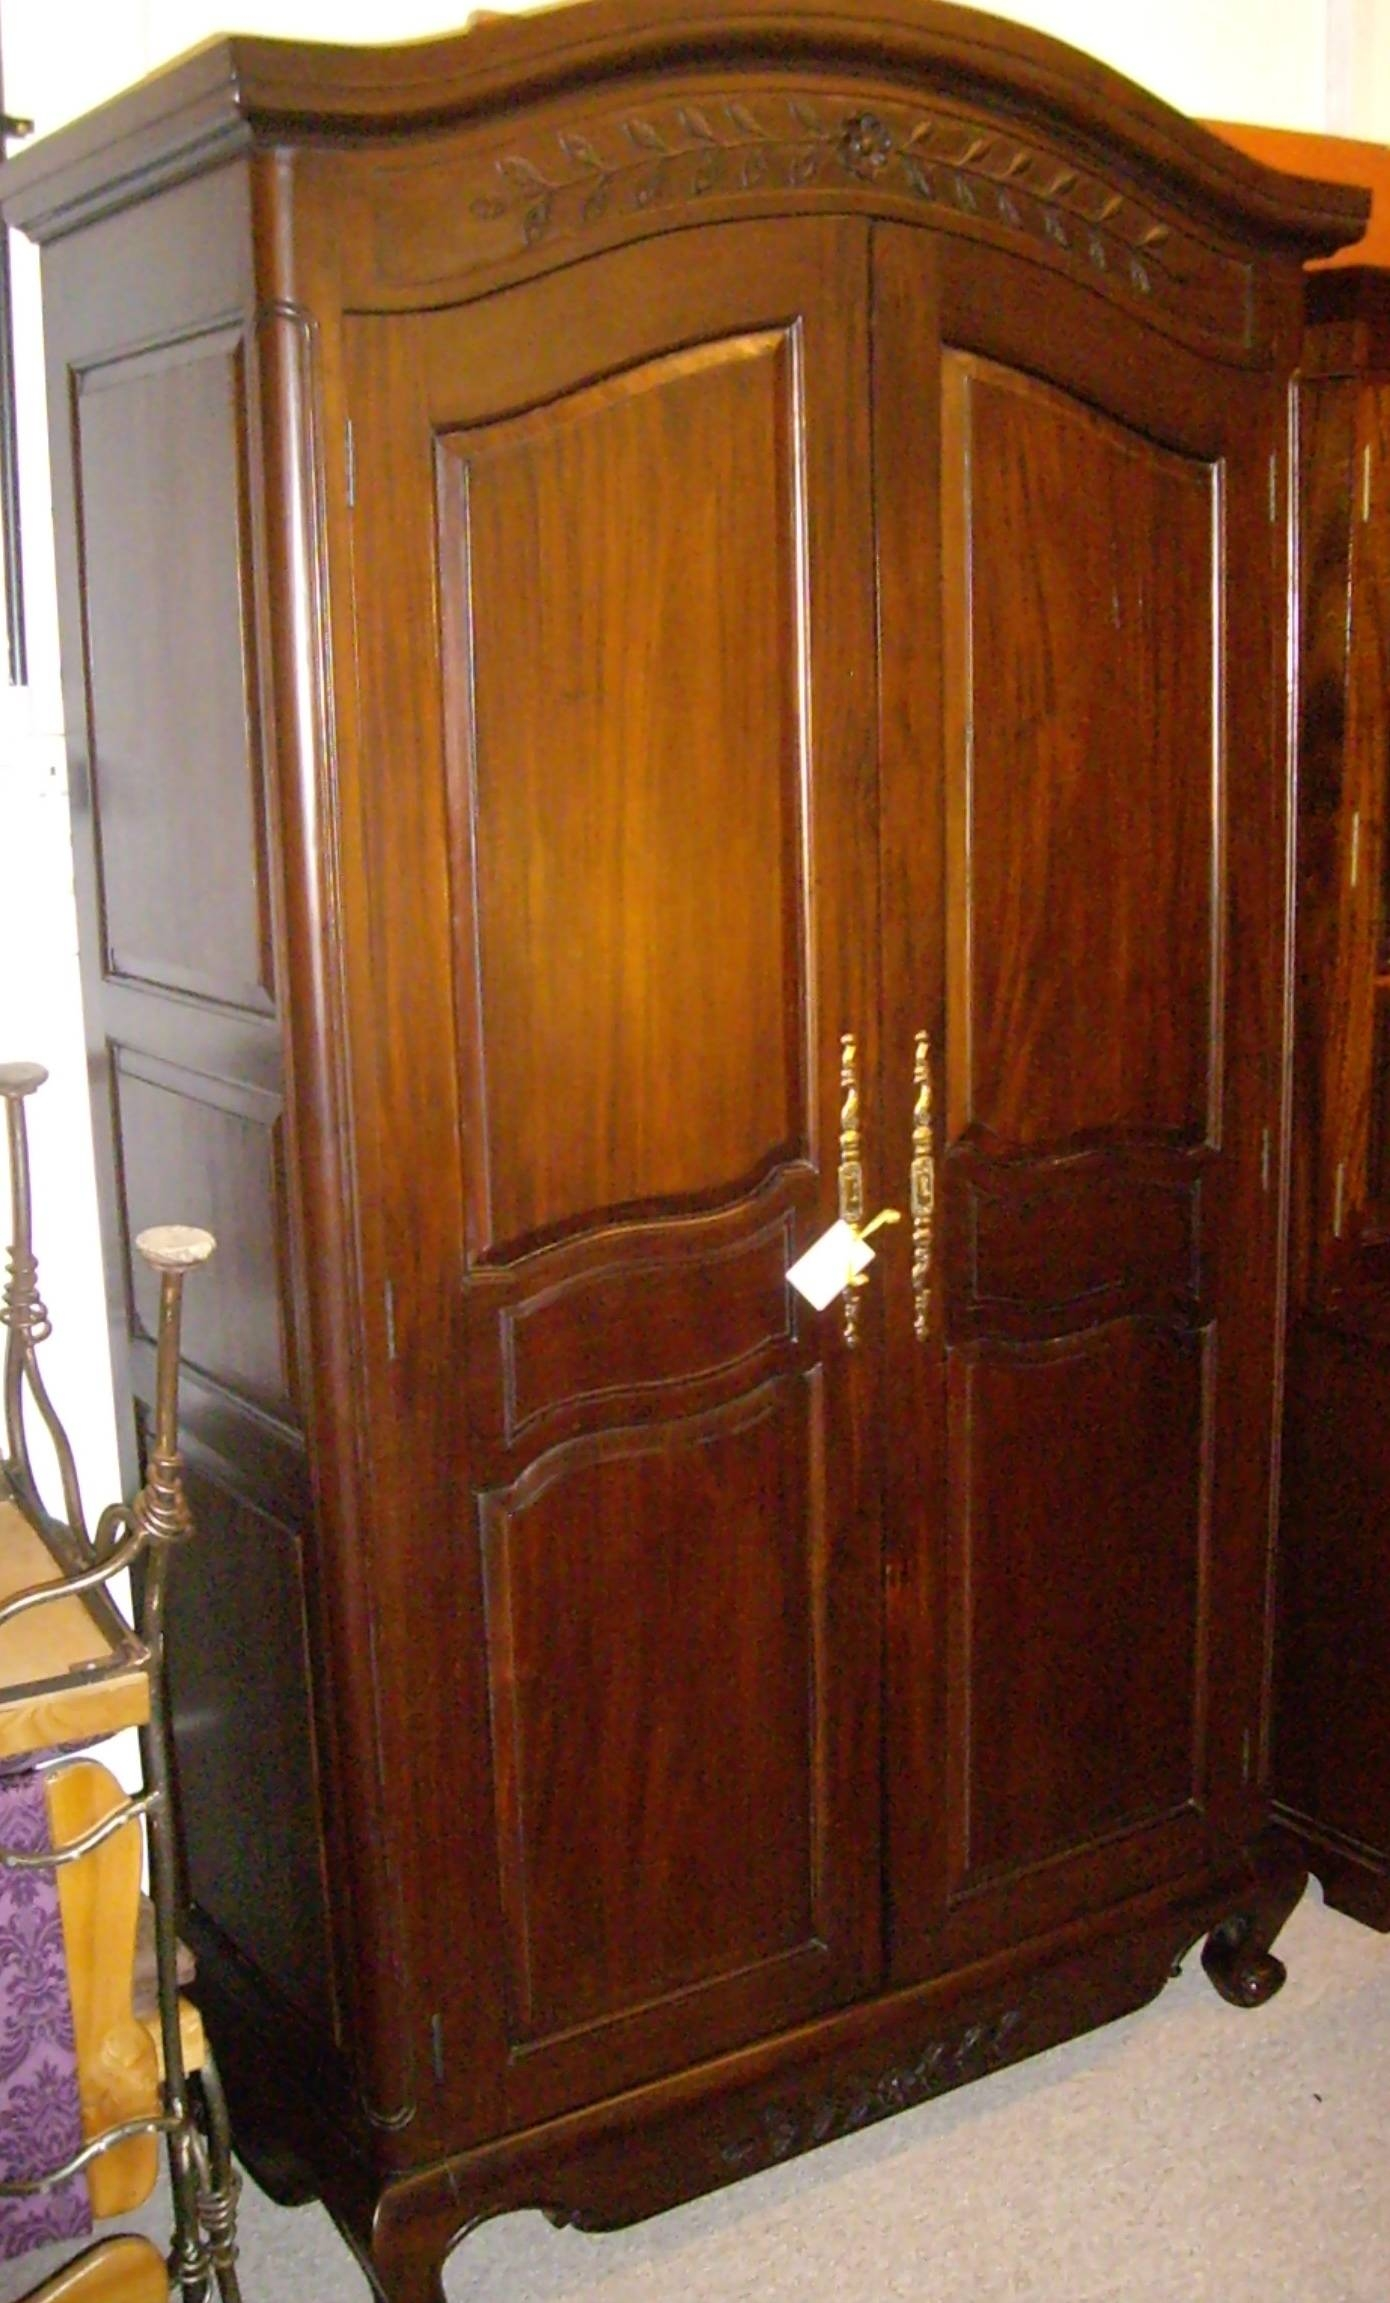 English & Scottish Antique Furniture & Decorative Antiques with regard to Dark Wood Wardrobe Cheap (Image 12 of 30)